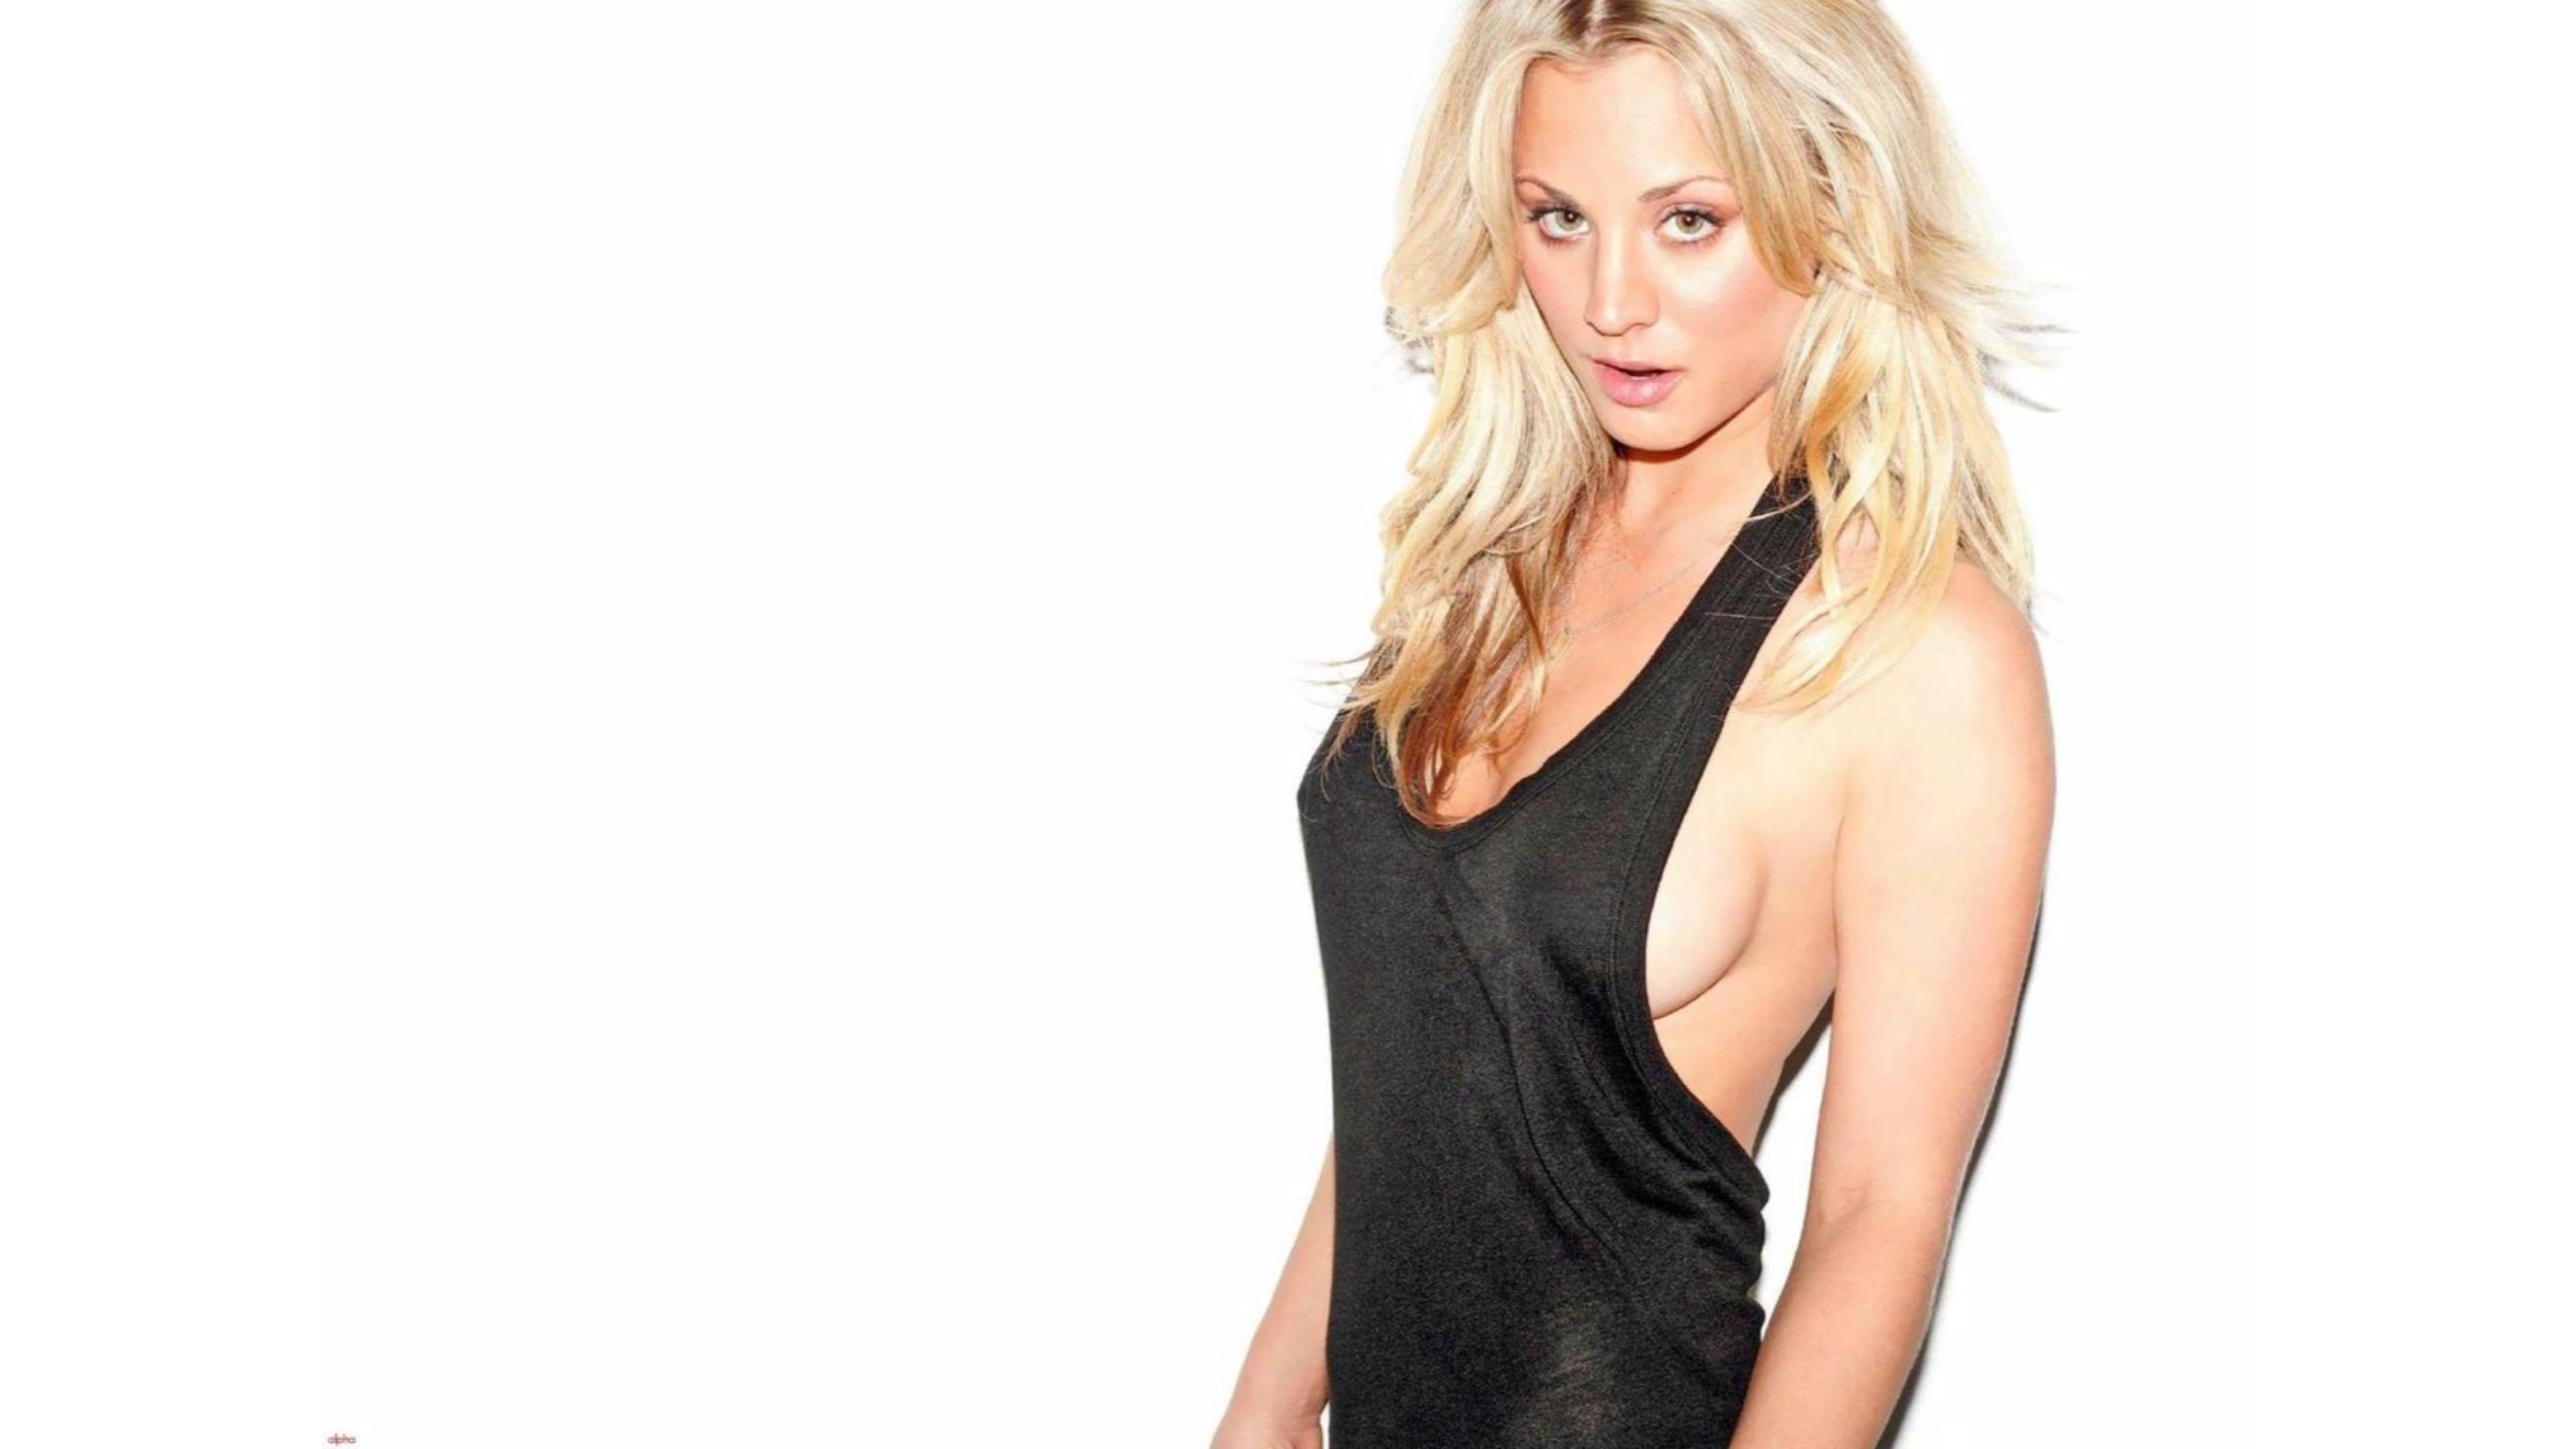 Kaley Cuoco Wallpapers Images Photos Pictures Backgrounds 3840x2160